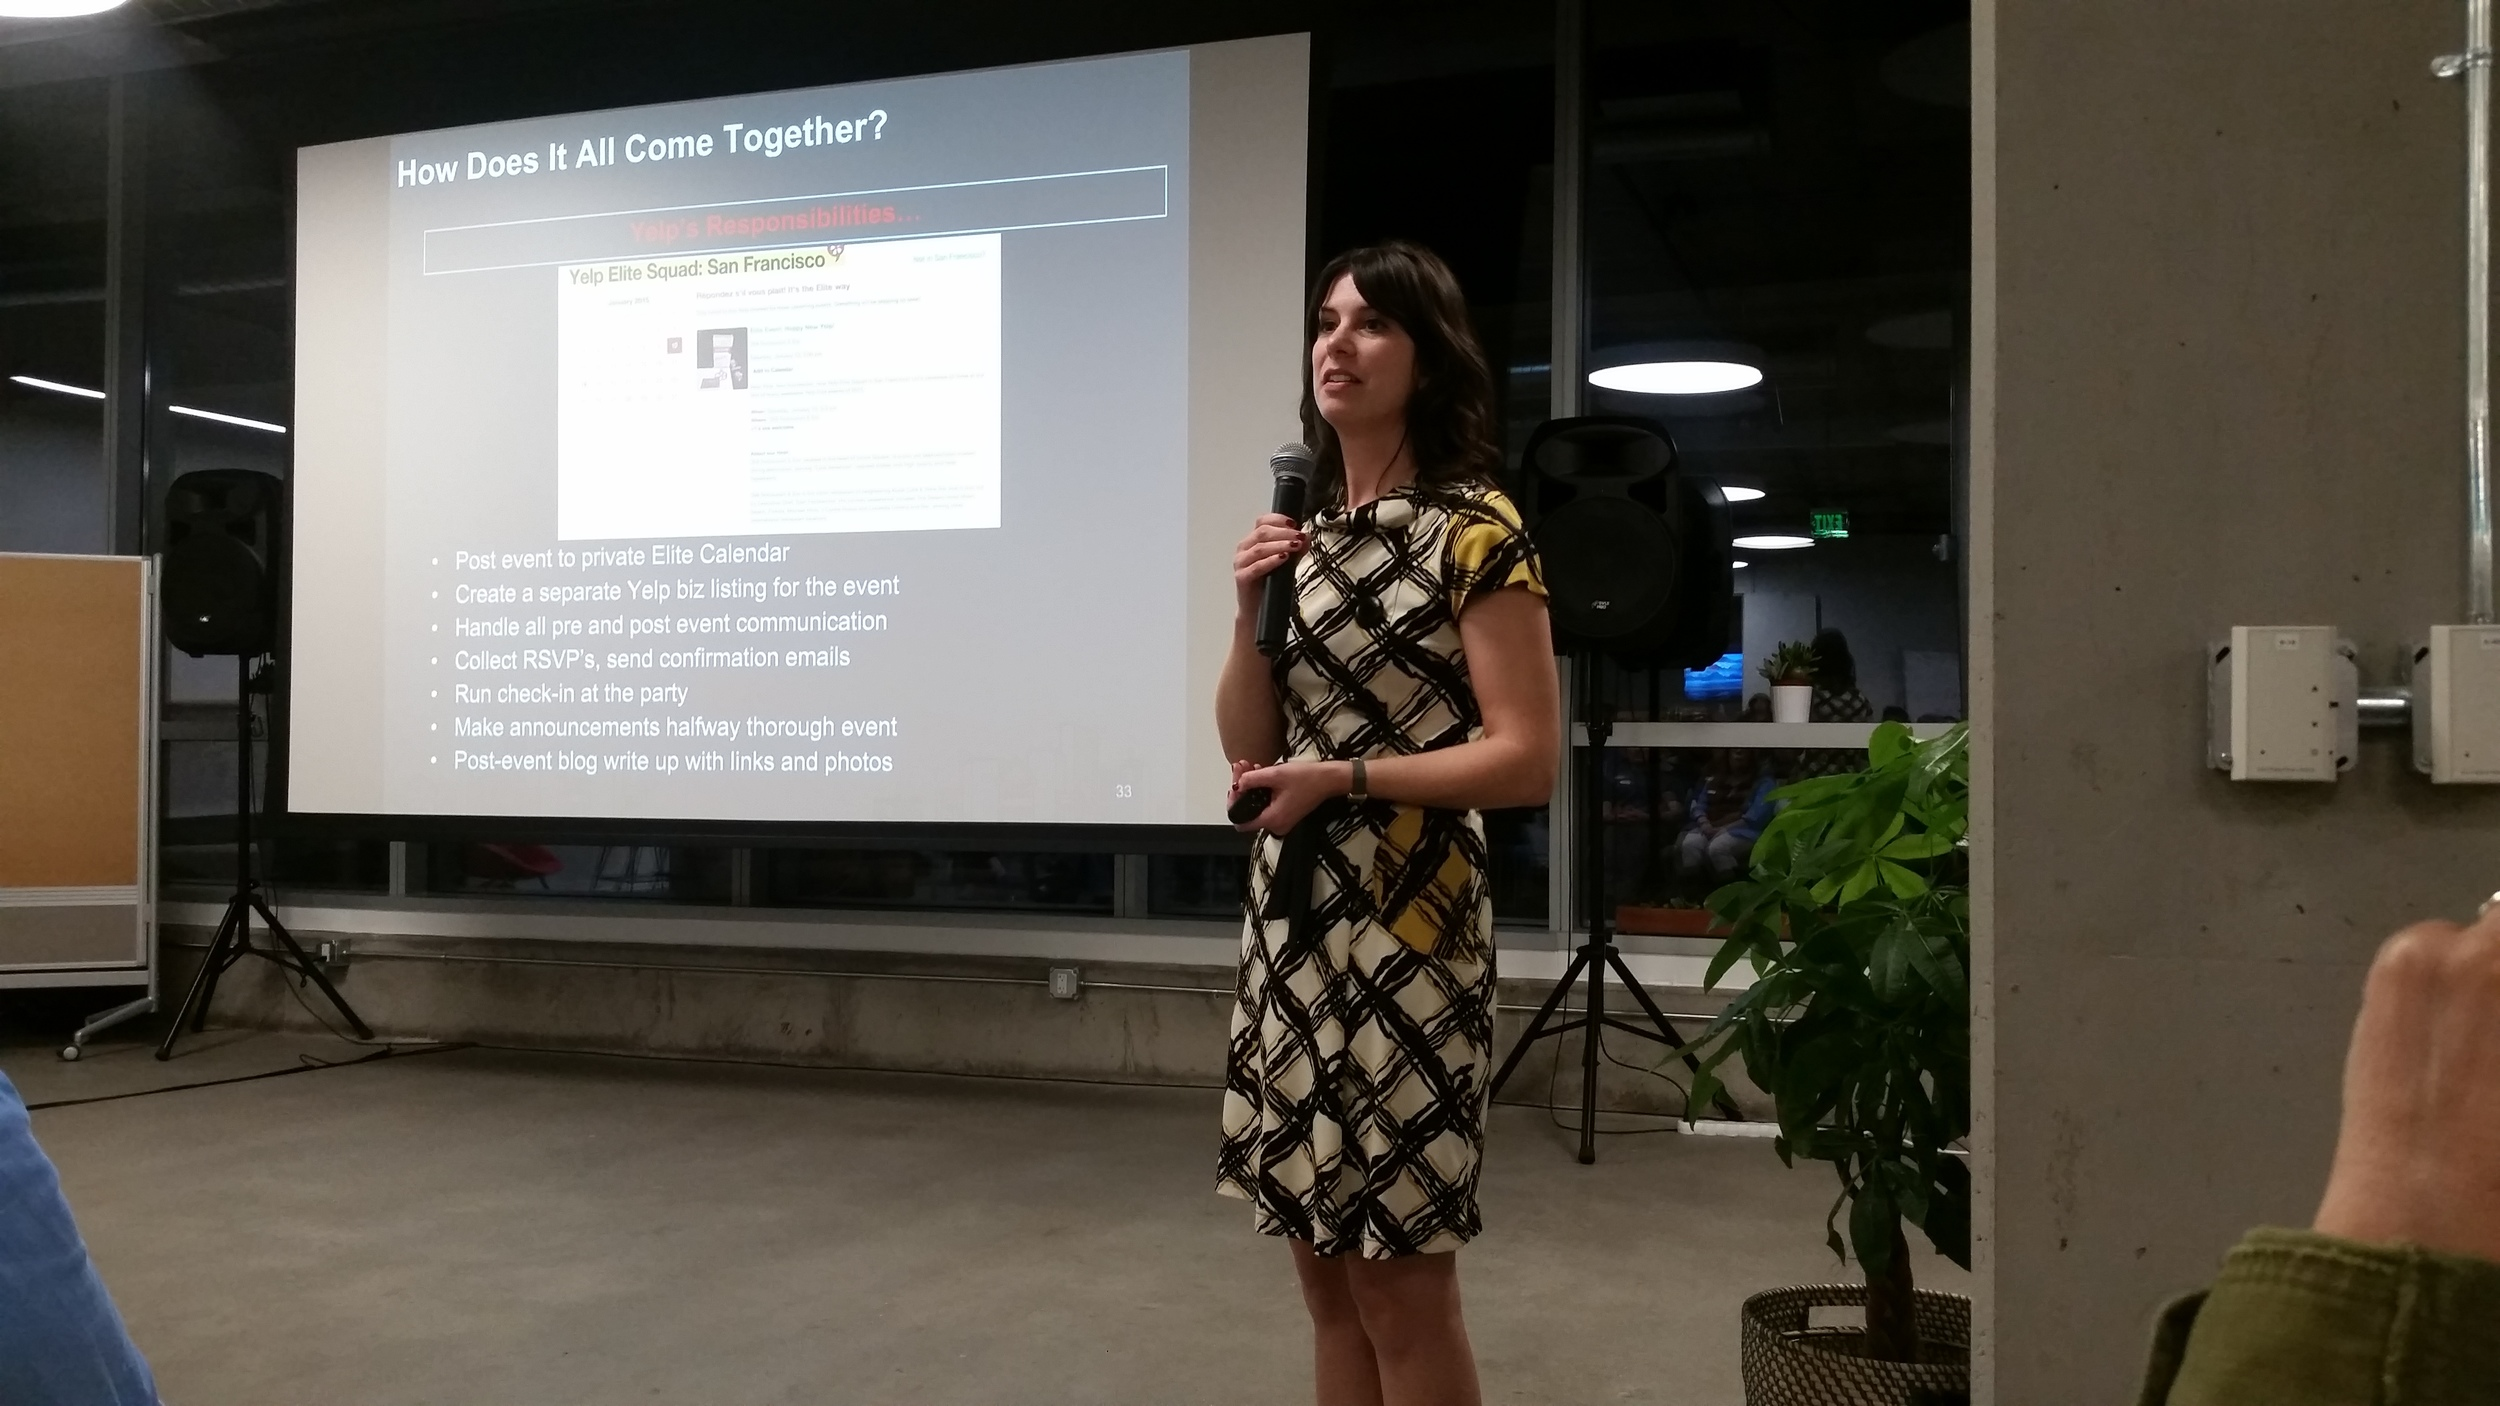 Abbie Schwarz presenting on how Yelp provides support to small businesses throwing events.